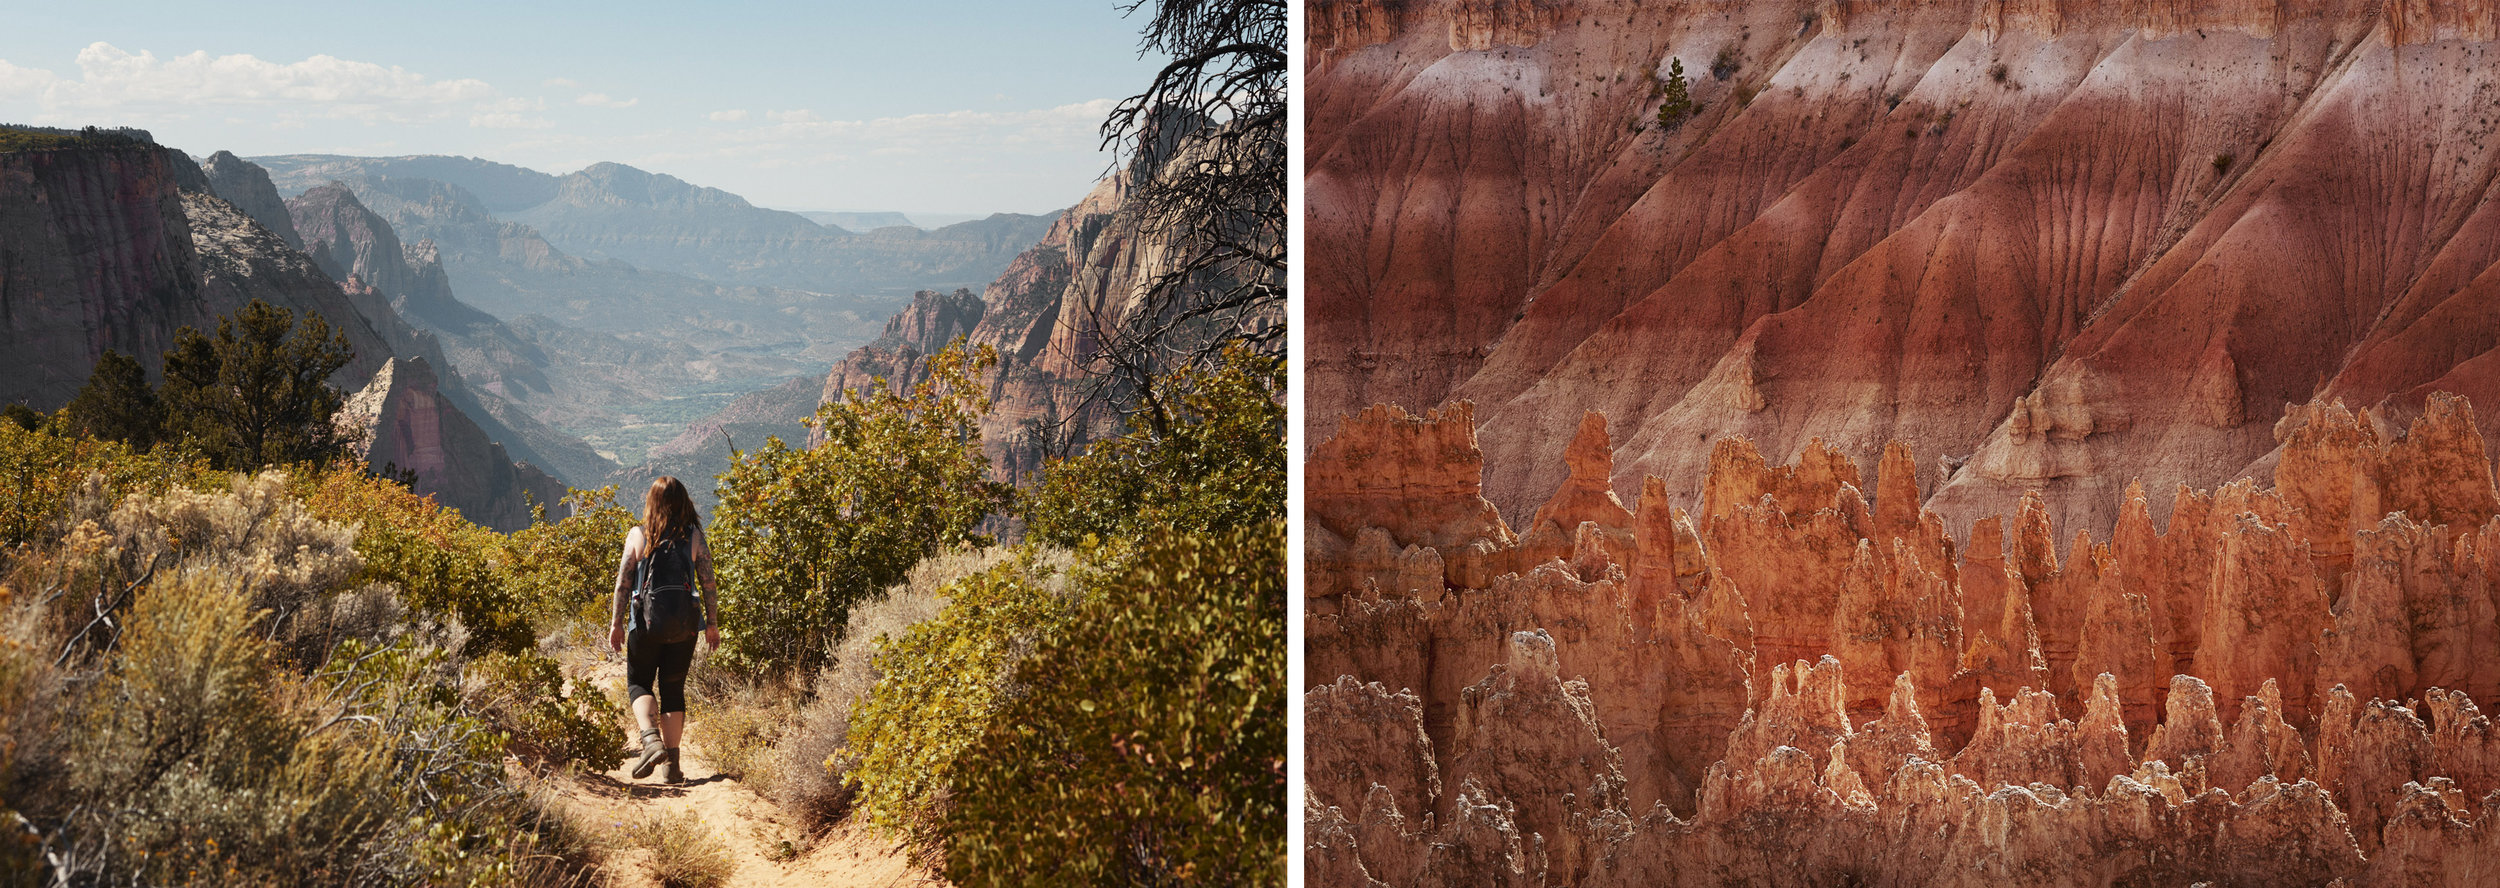 Left: Zion National Park, Right: Bryce Canyon National Park